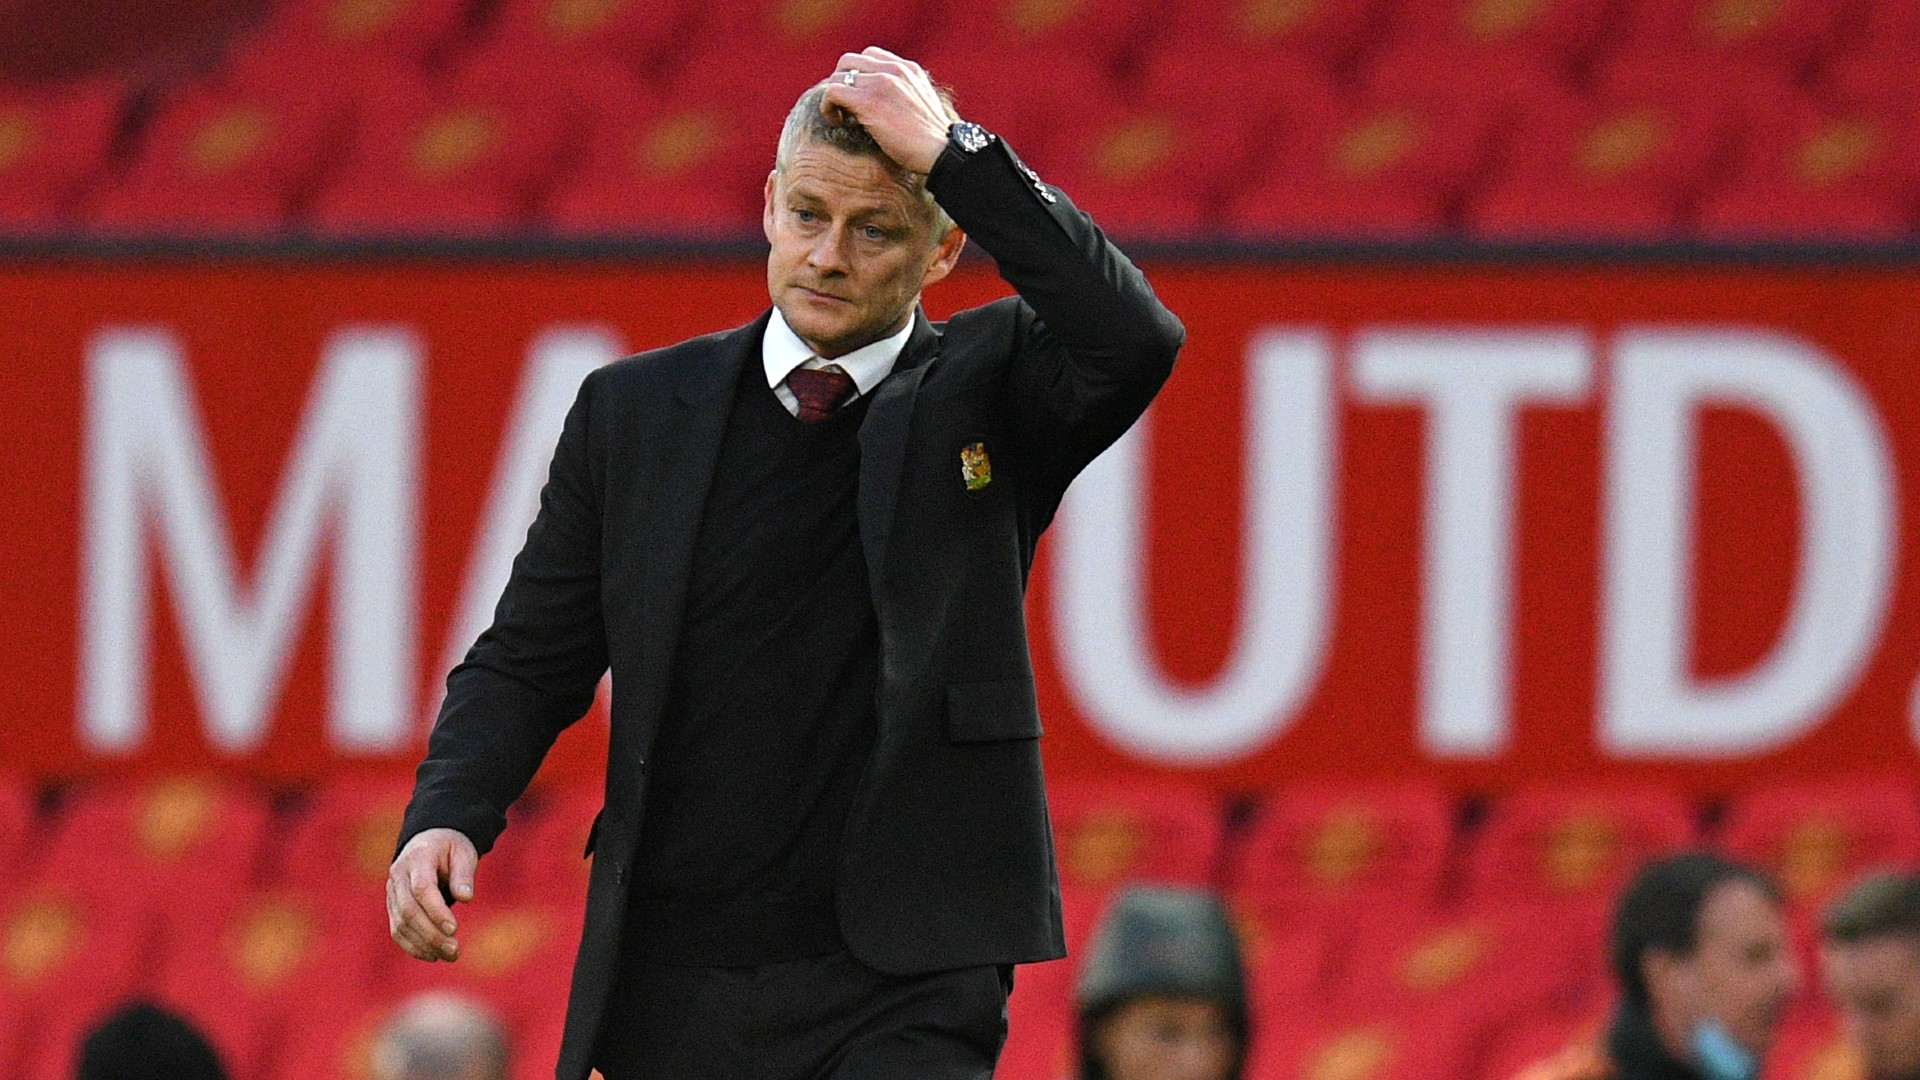 Man Utd have 'depleted' squad for PSG fixture with ...